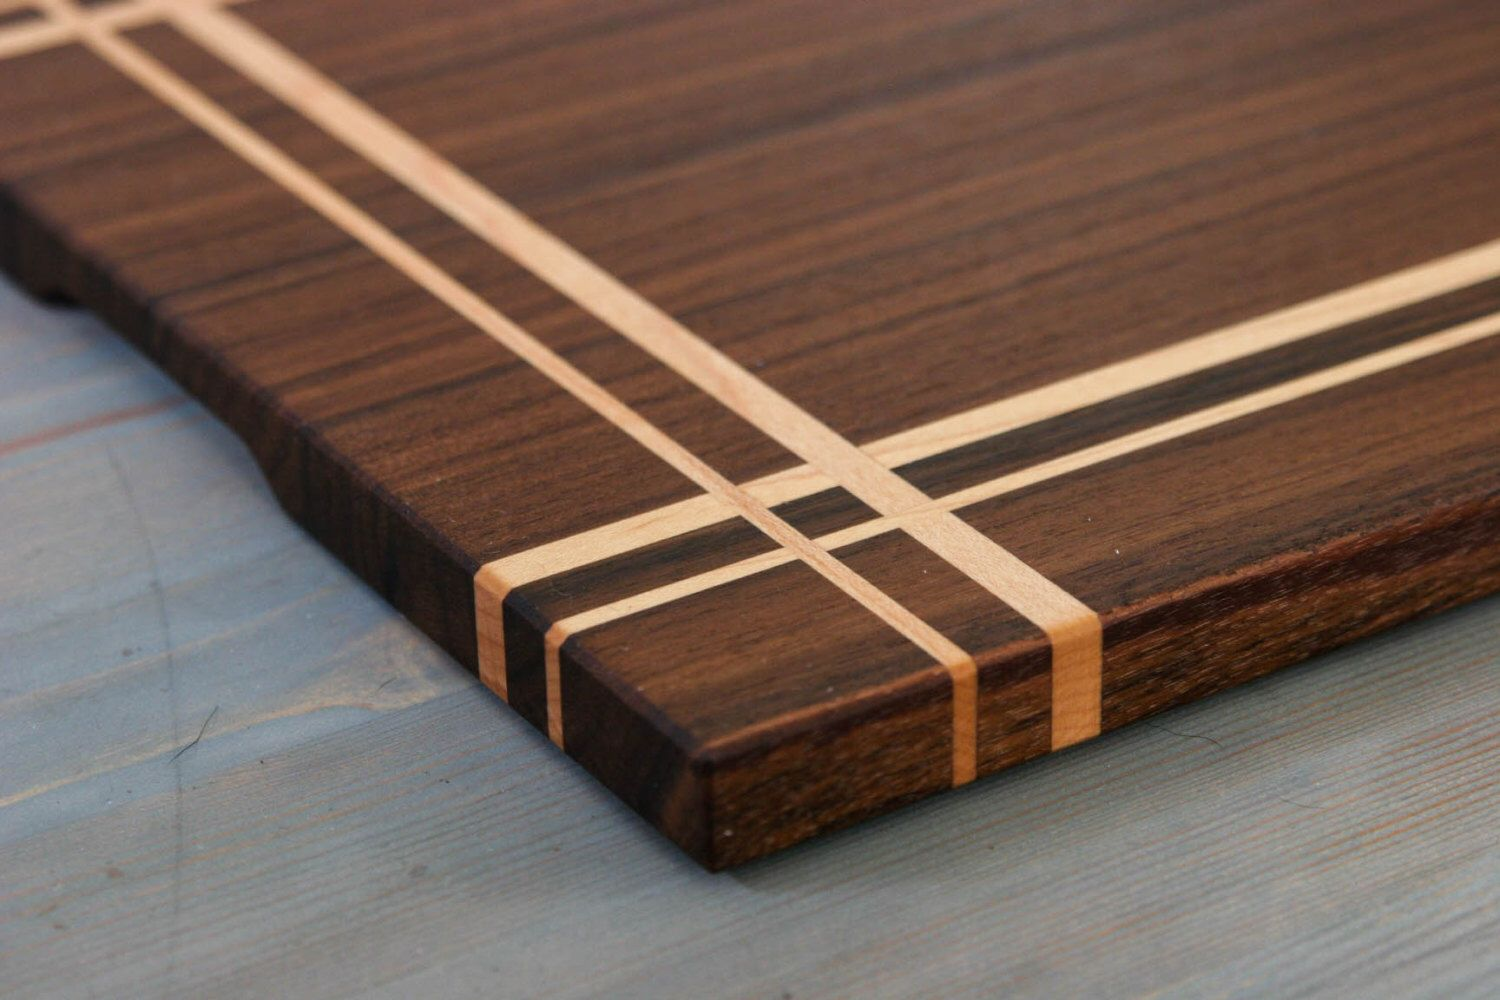 Pin By Darin Blanchard On Wood Projects Wood Cutting Boards Wood